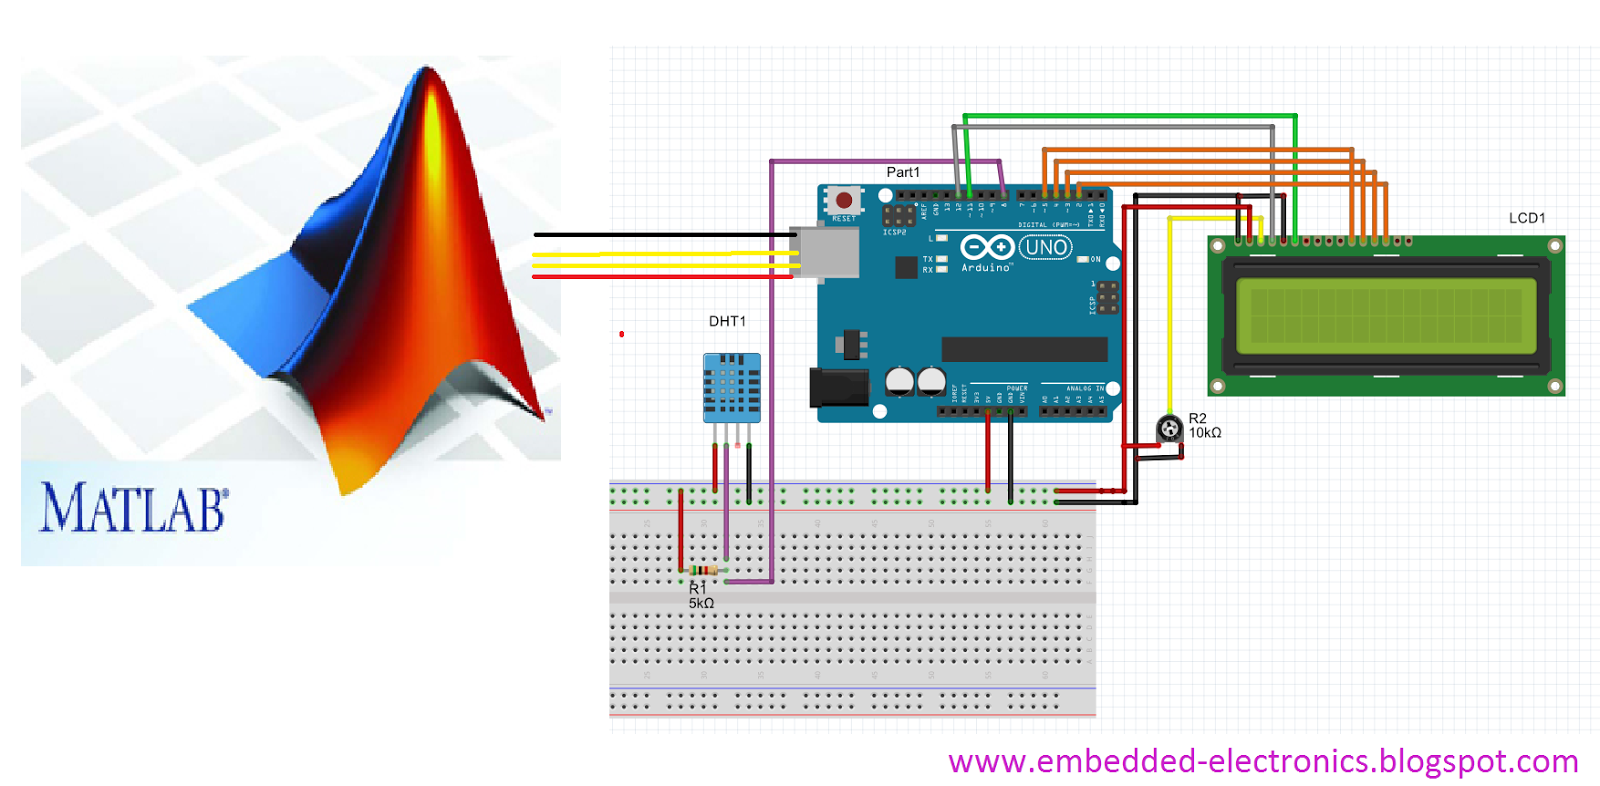 Embedded electronics dht interfacing with matlab and